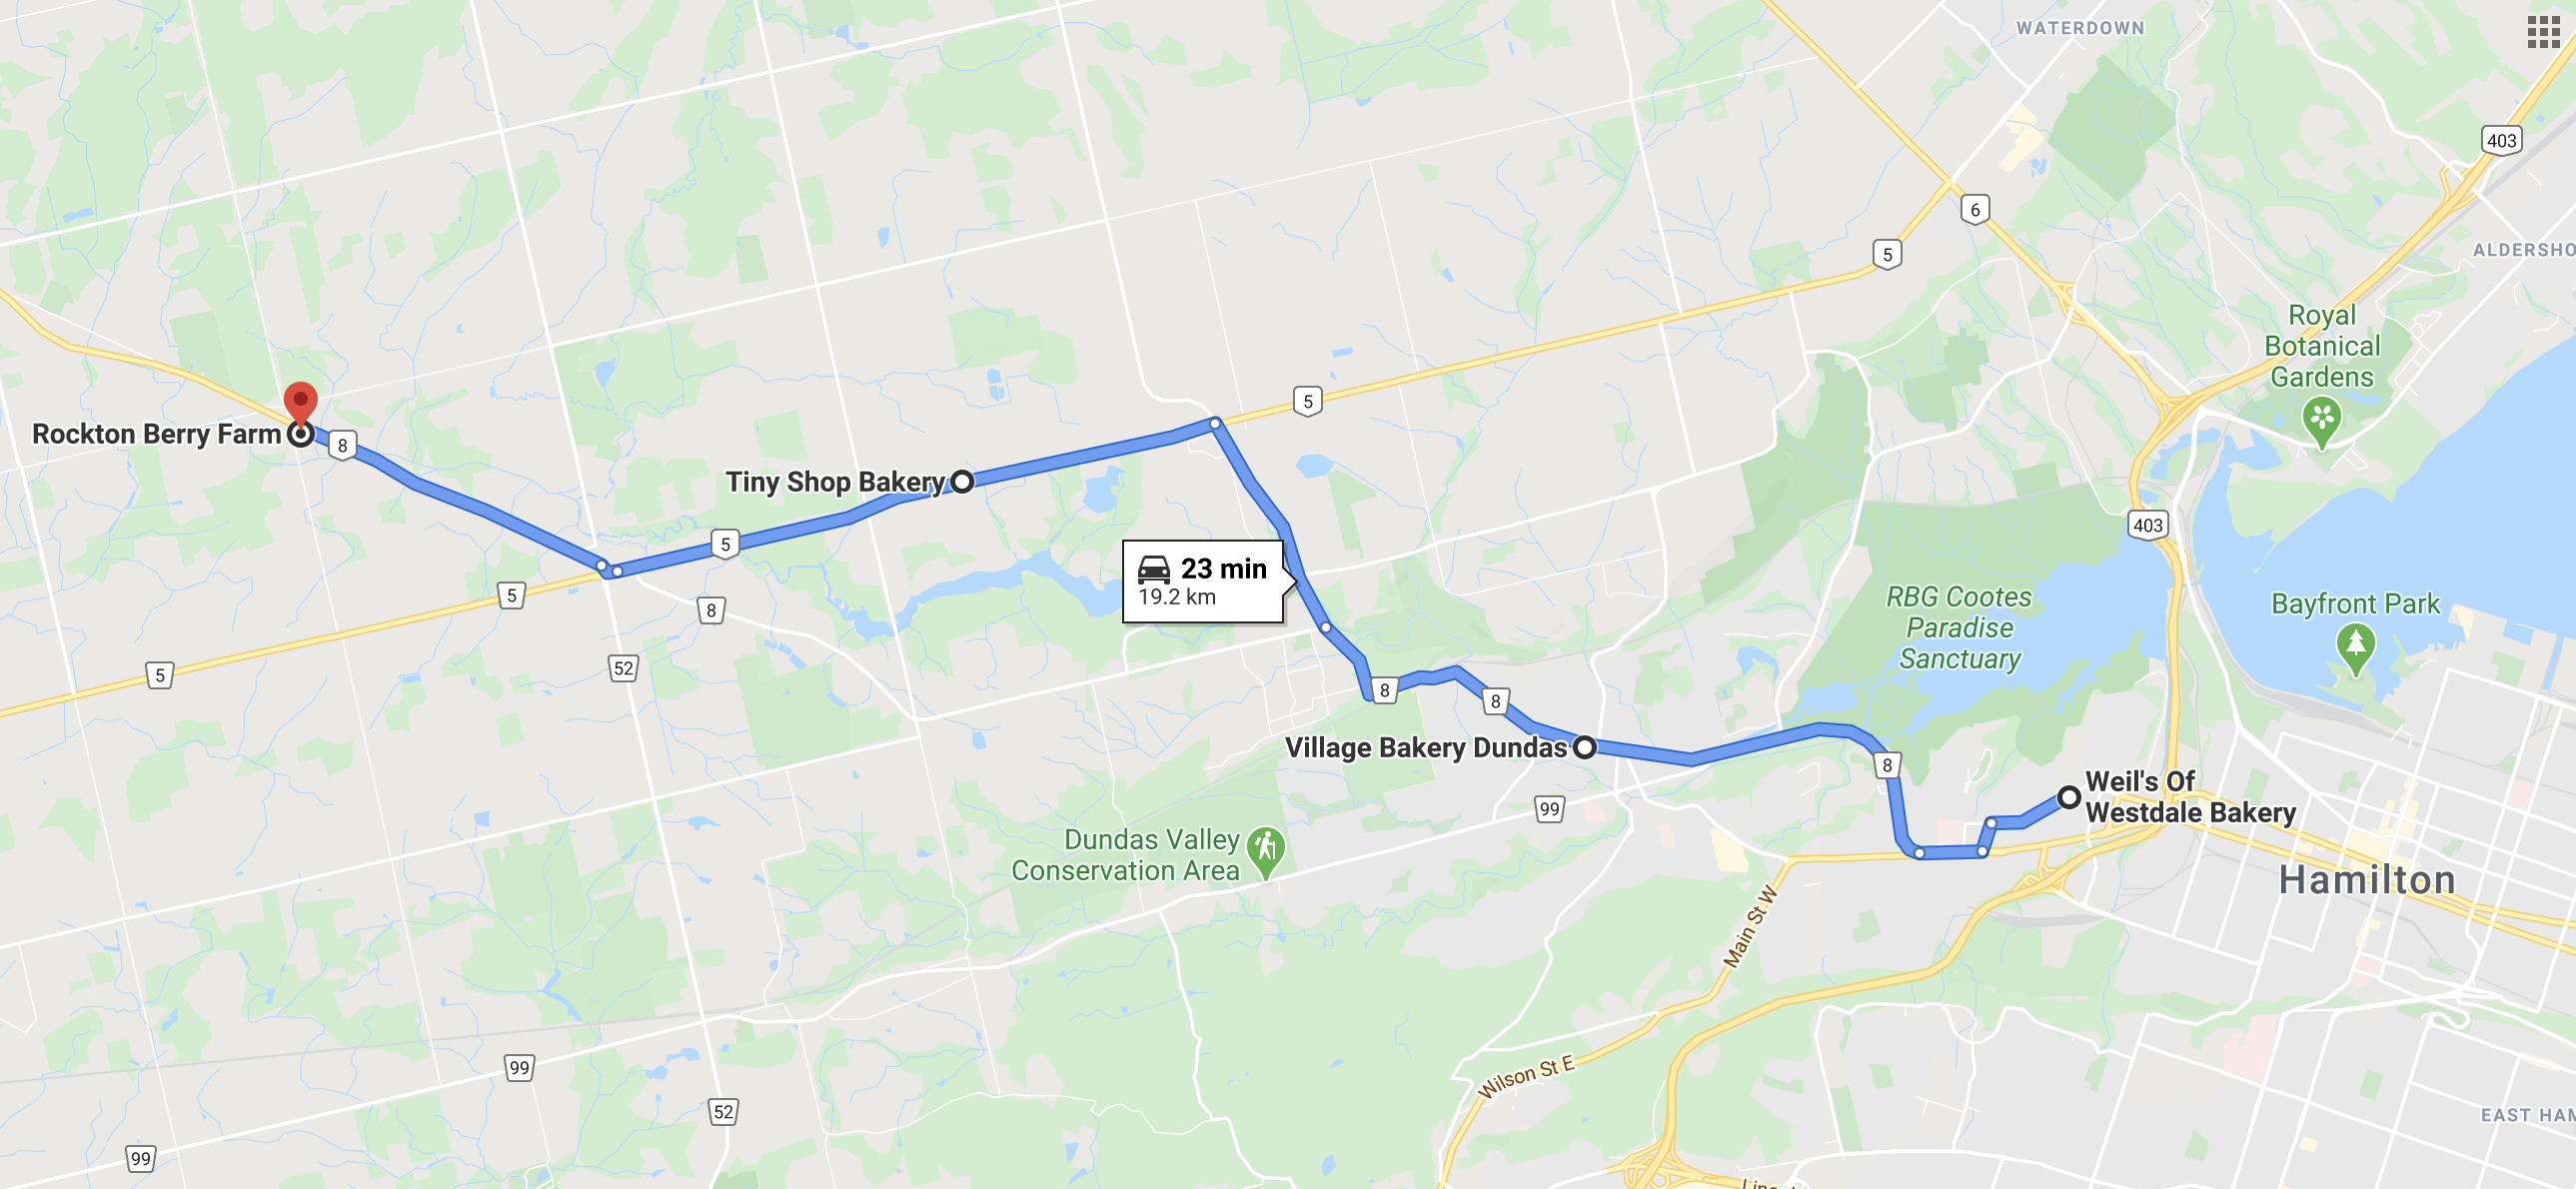 Map of the Hamilton Wentworth County area butter tart tour locations